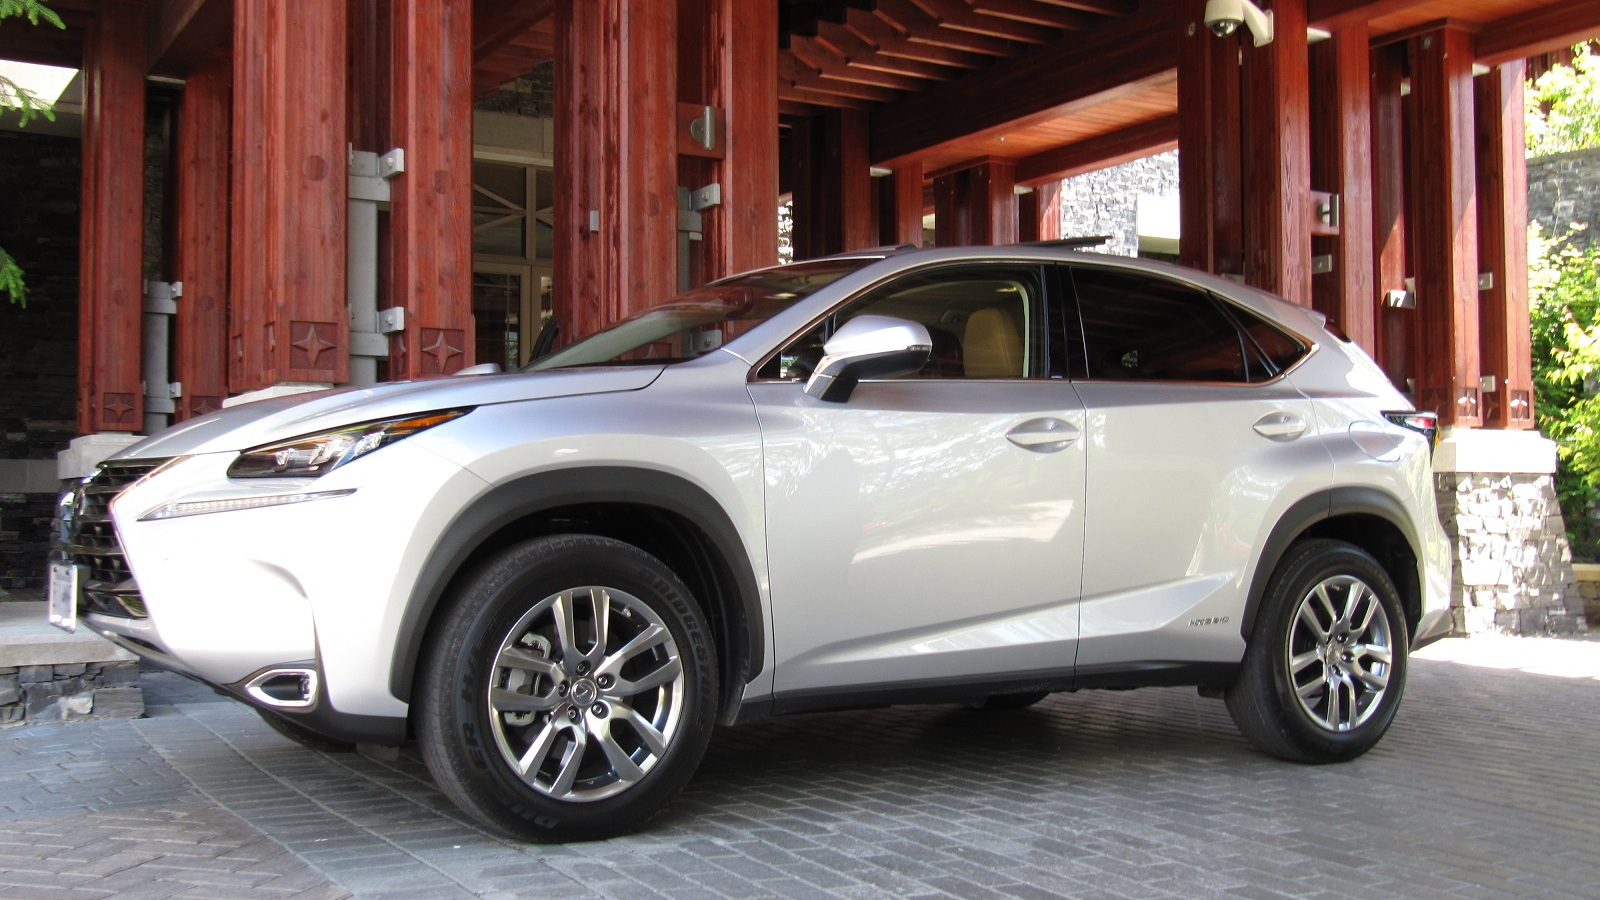 2015 Lexus NX 300h, global launch, Whistler, BC, Canada, June 2014